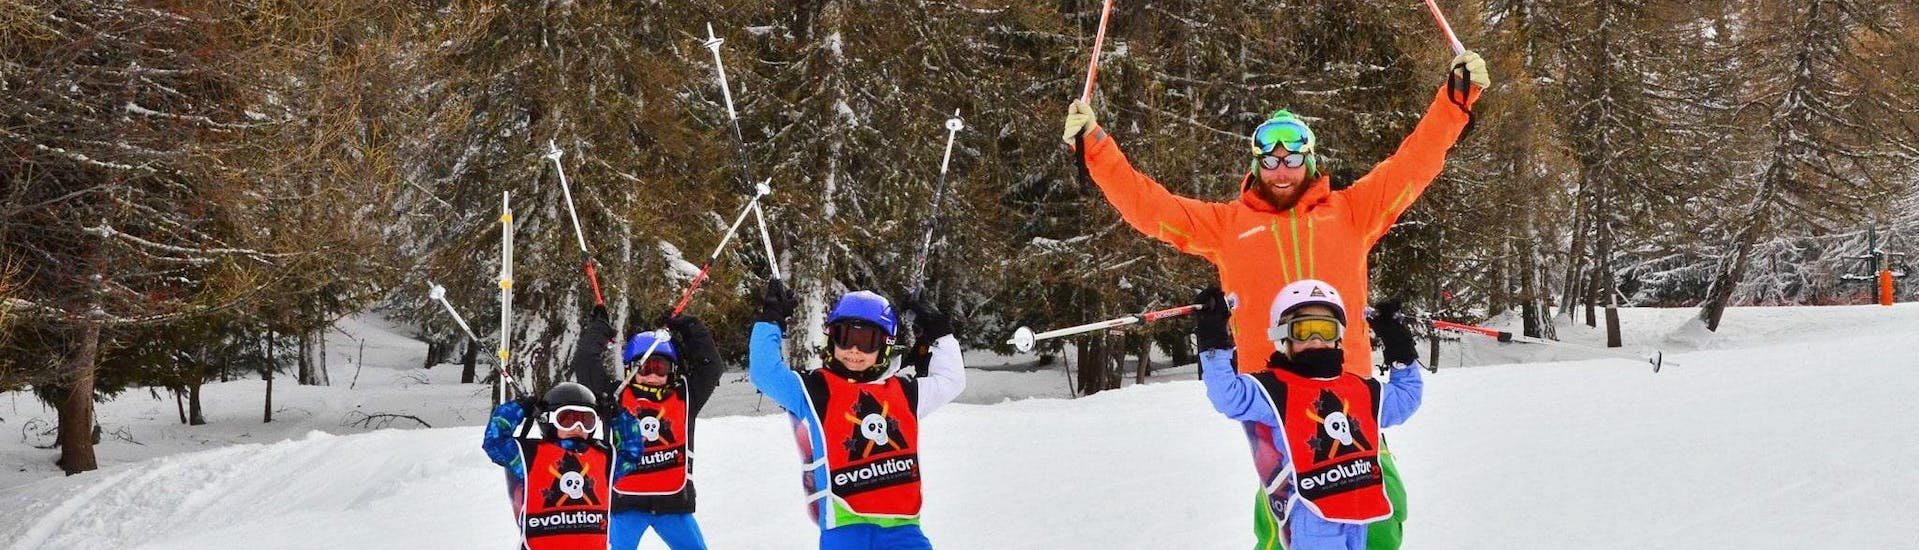 Kids are having a great time during their Kids Ski Lessons (6-12 y.) for Experienced Skiers with the ski school Evolution 2 La Plagne Montchavin - Les Coches.